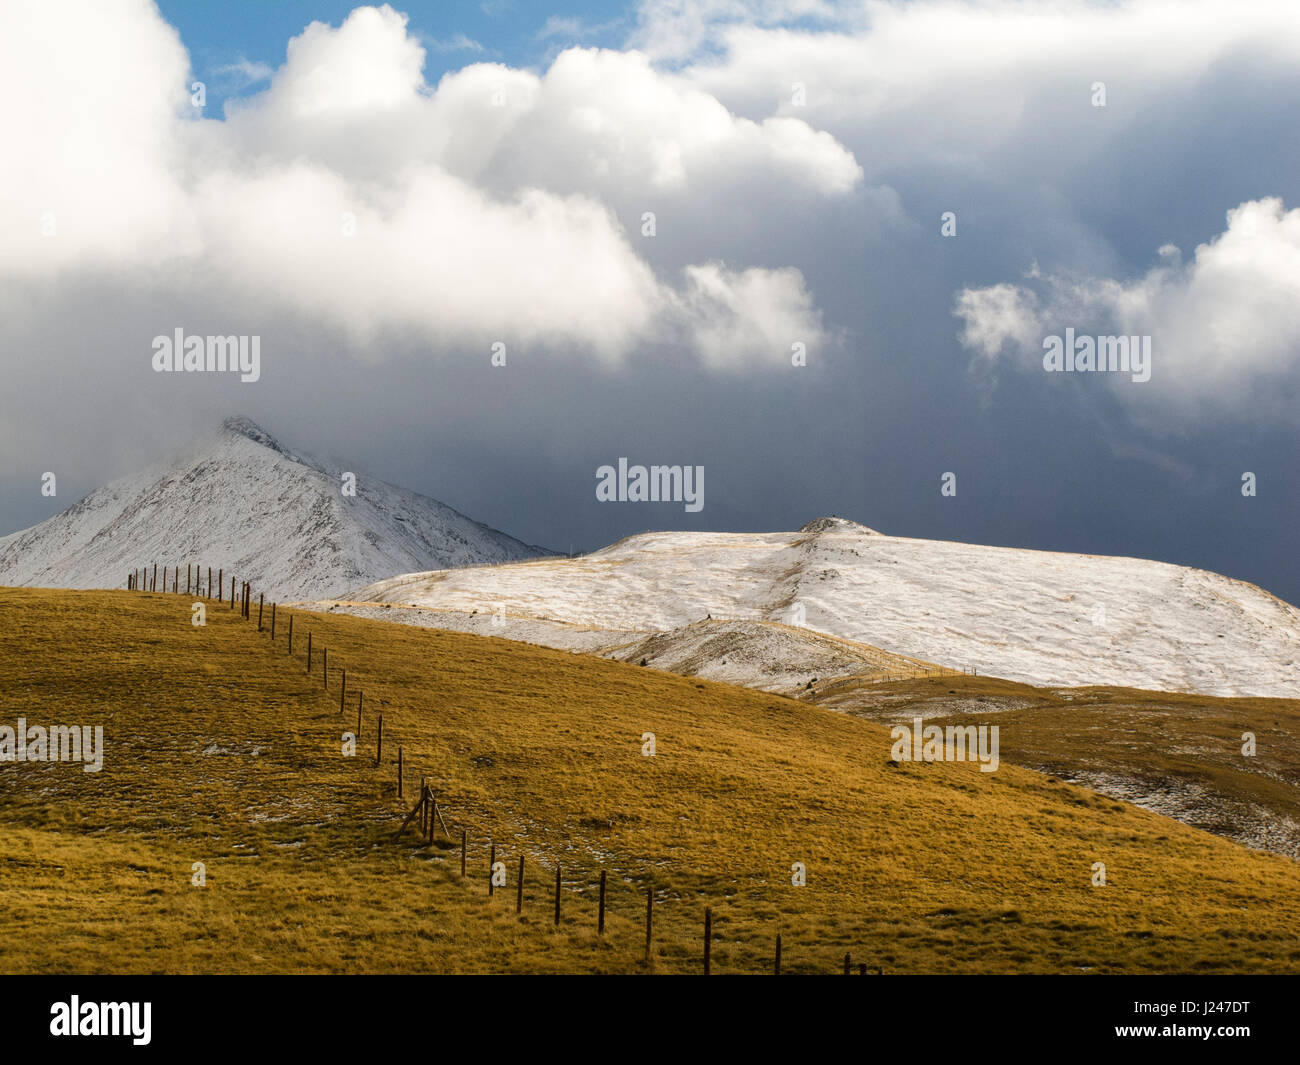 Snow covered mountain in a pyrenean landscape - Stock Image